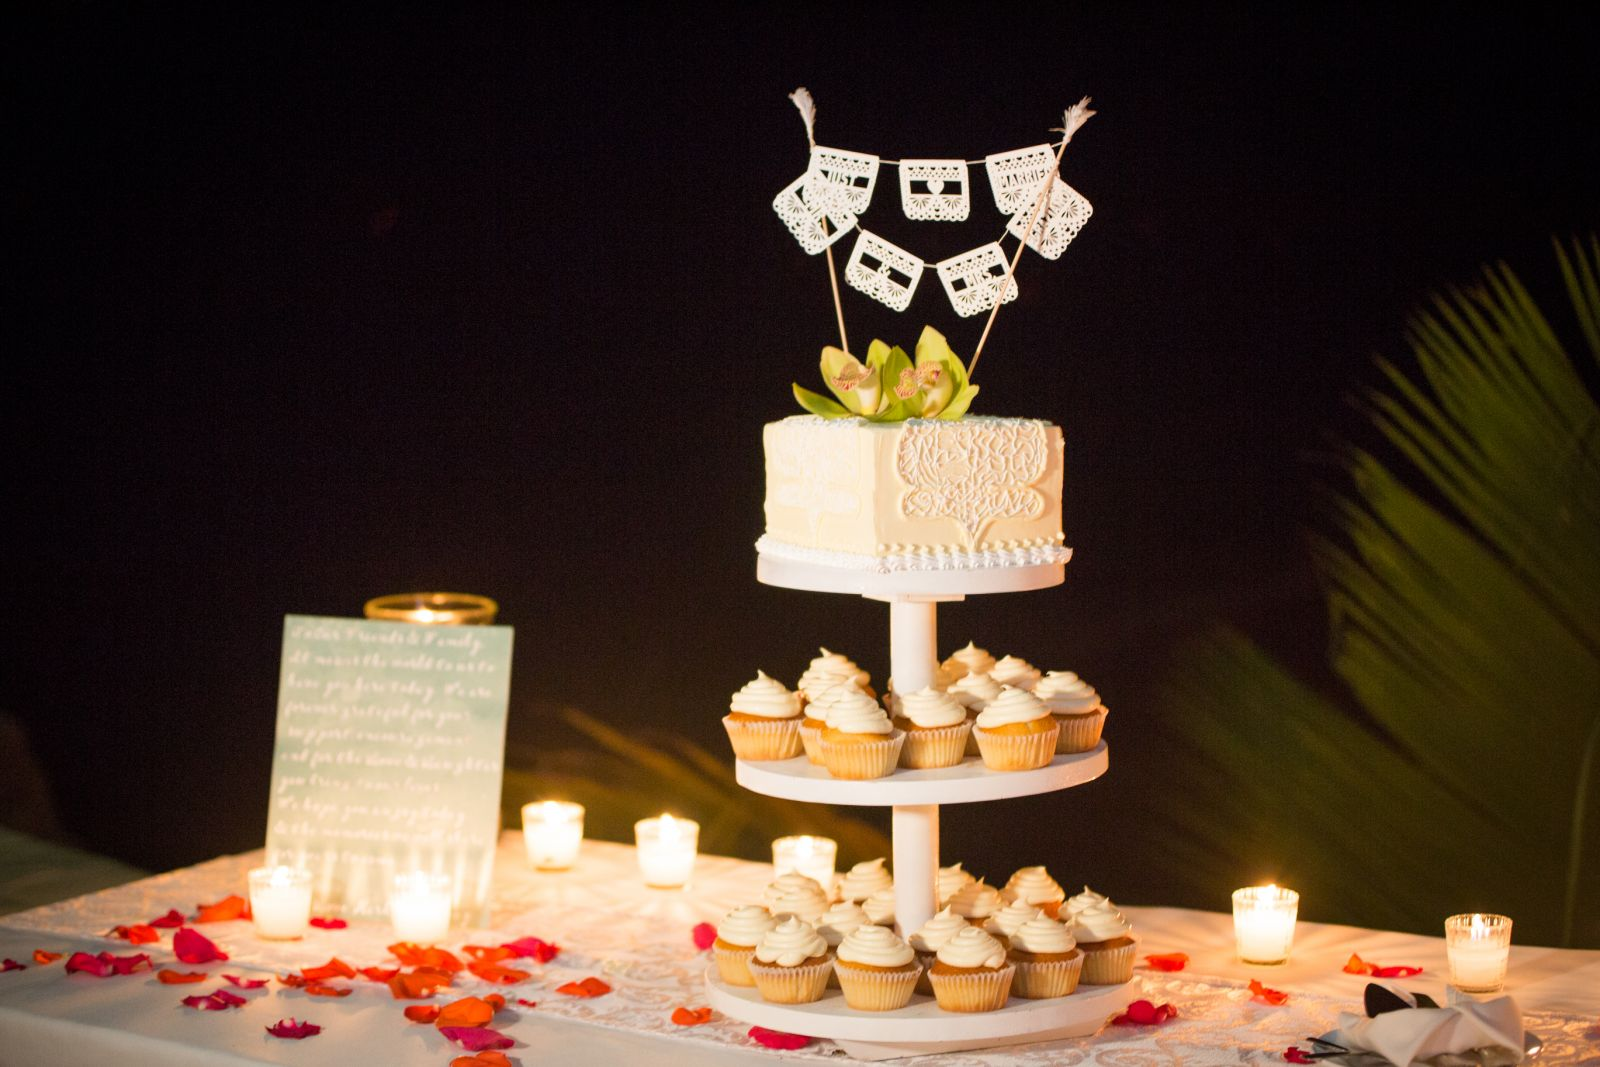 A top wedding cake and a combination of cupcakes